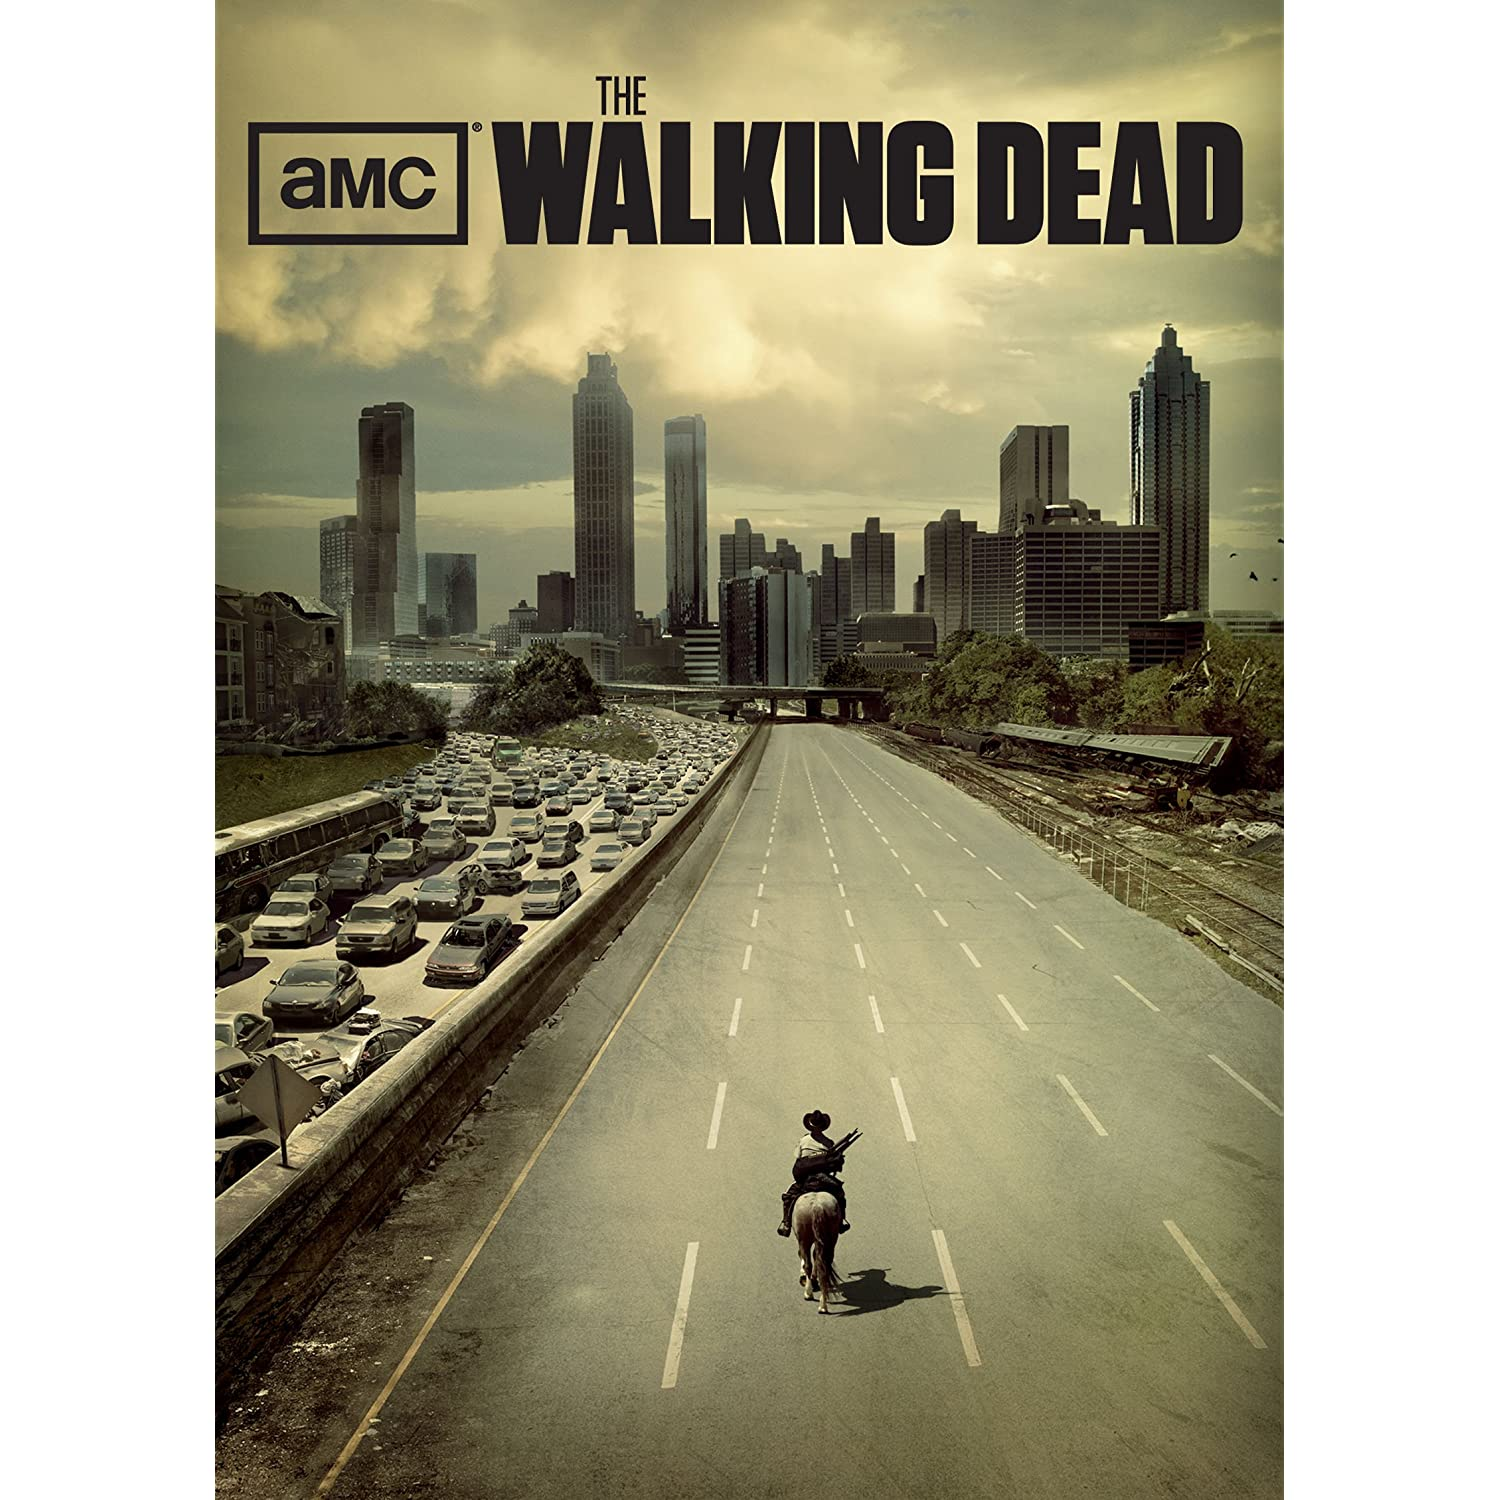 The Walking Dead: The Complete First Season (2011)